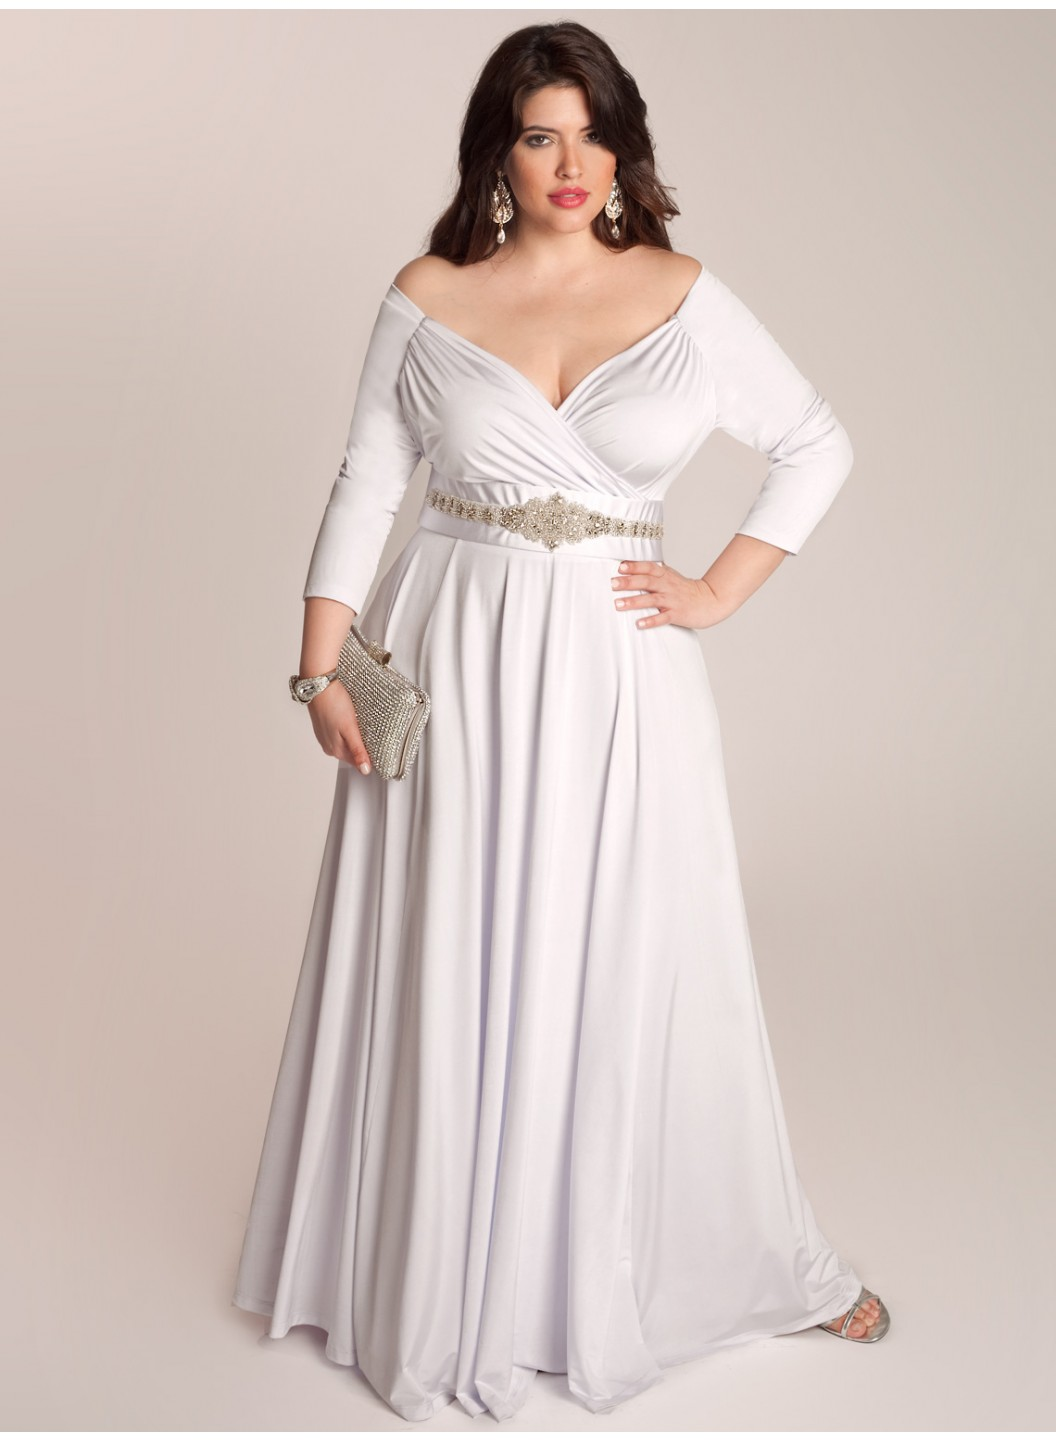 Top 10 plus size wedding dress designers by pretty pear bride for What is my wedding dress size